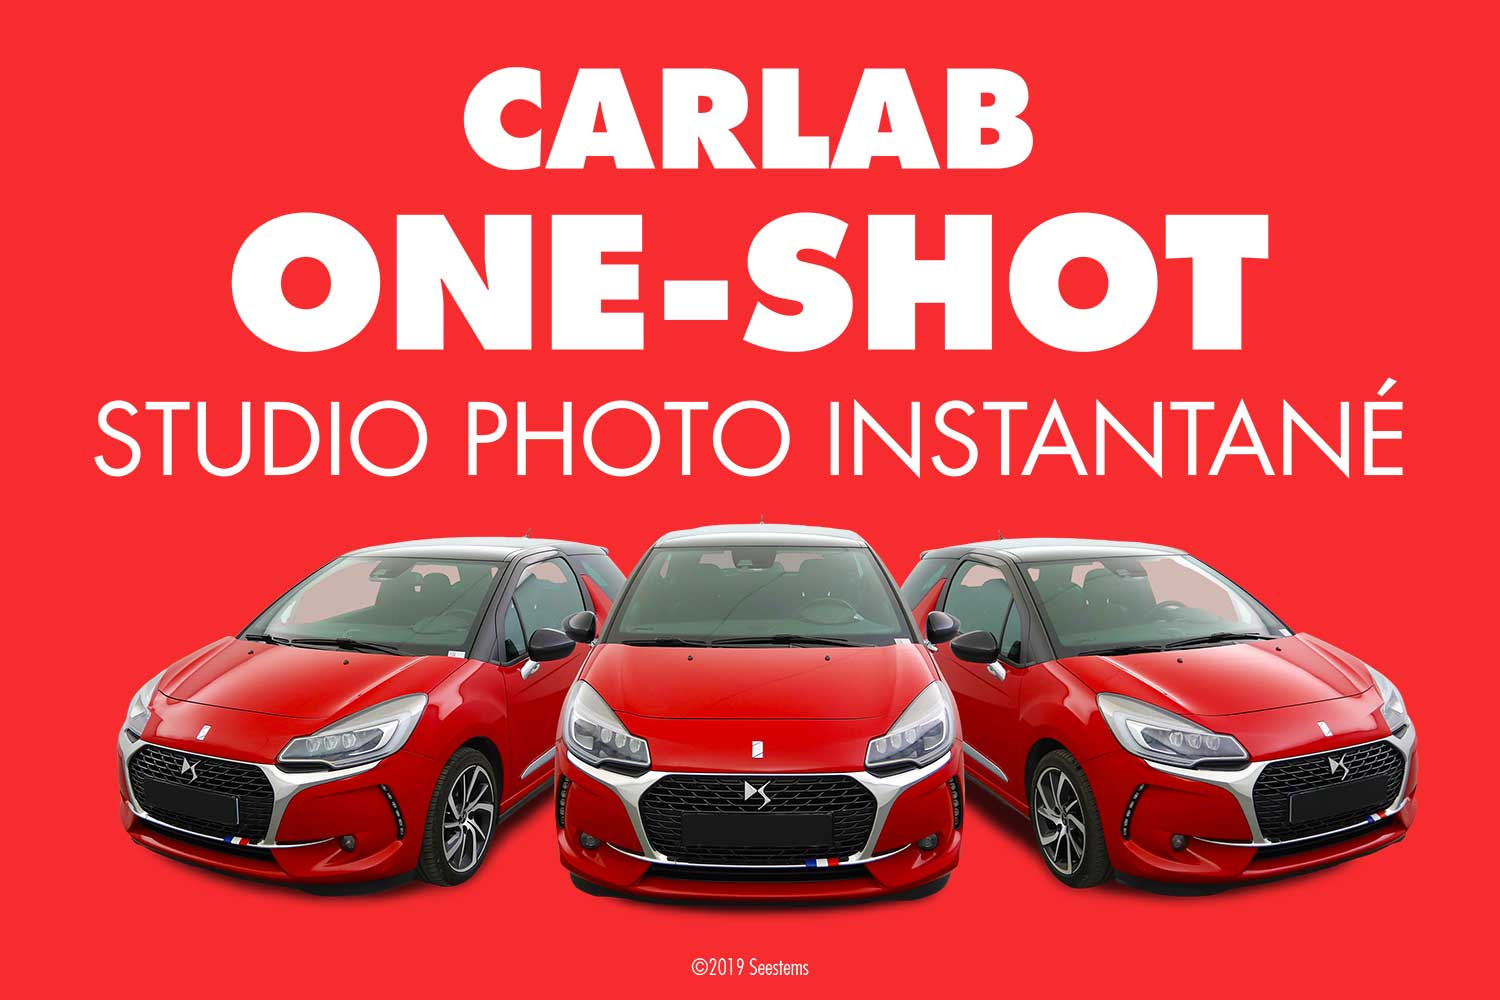 aperçu video demo carlab one-shot